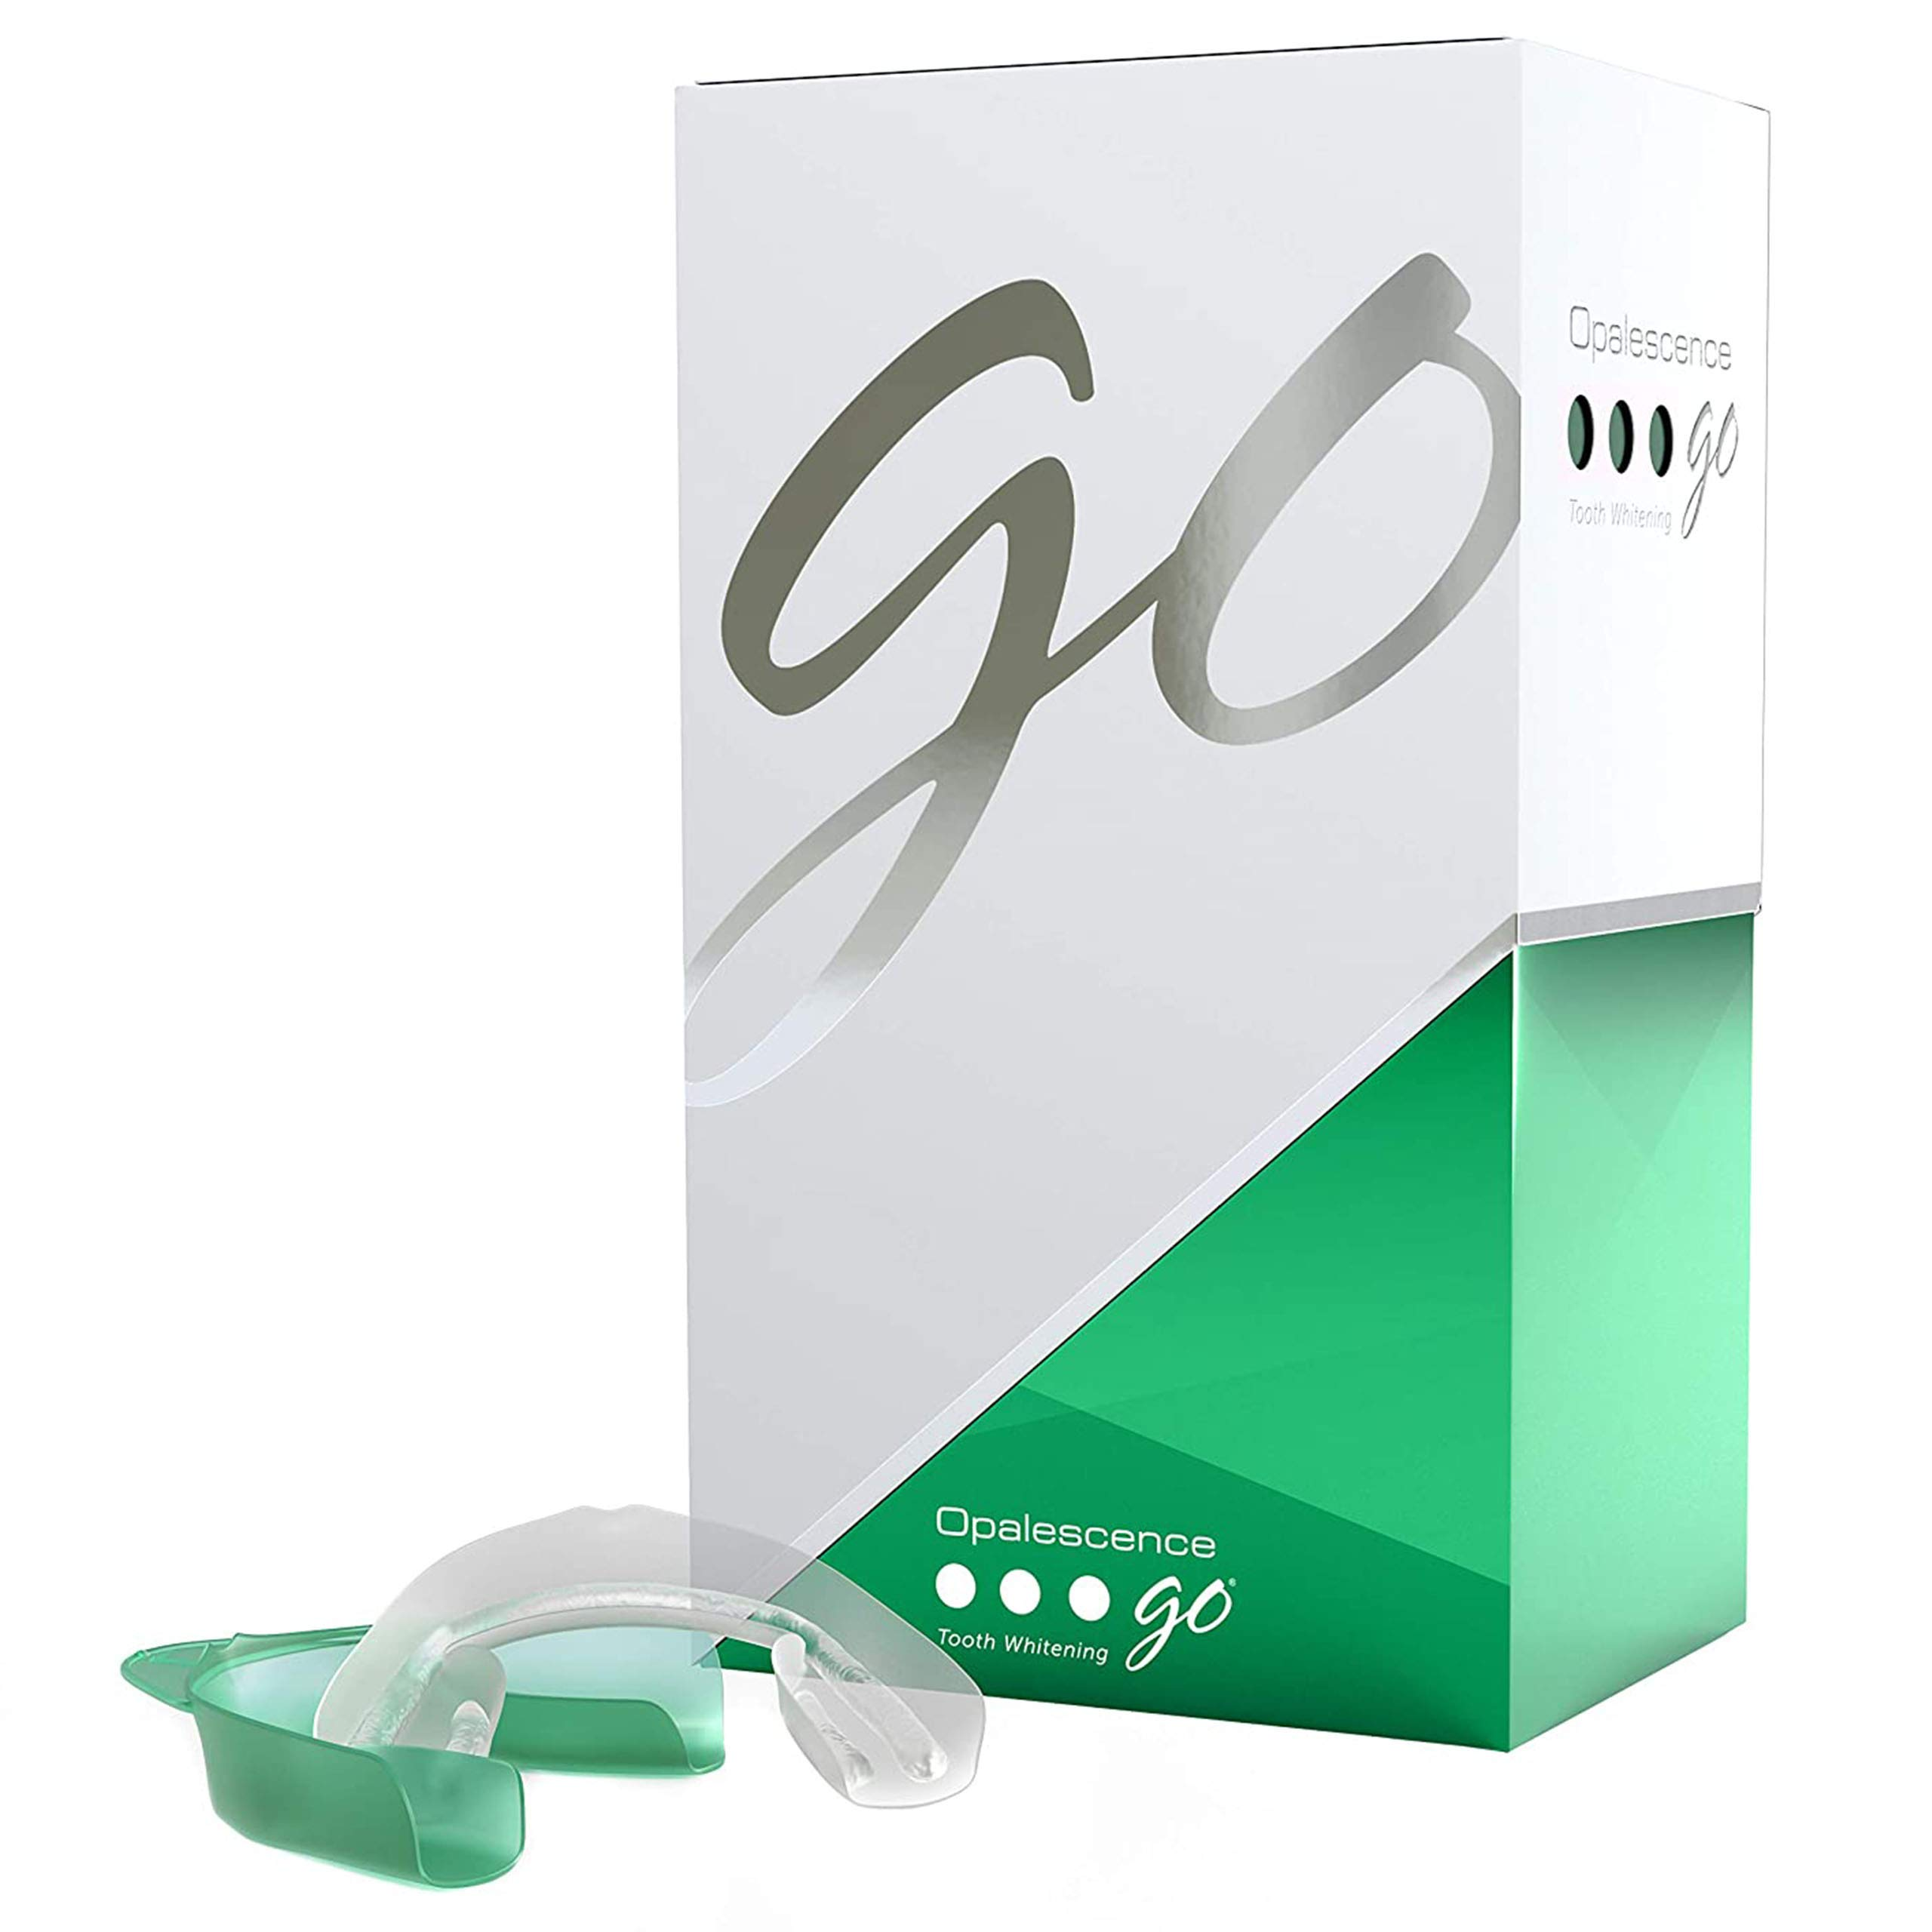 Opalescence Go - Prefilled Whitening Trays - 10% Teeth Whitening Kit, Oral Care - Mint Flavor